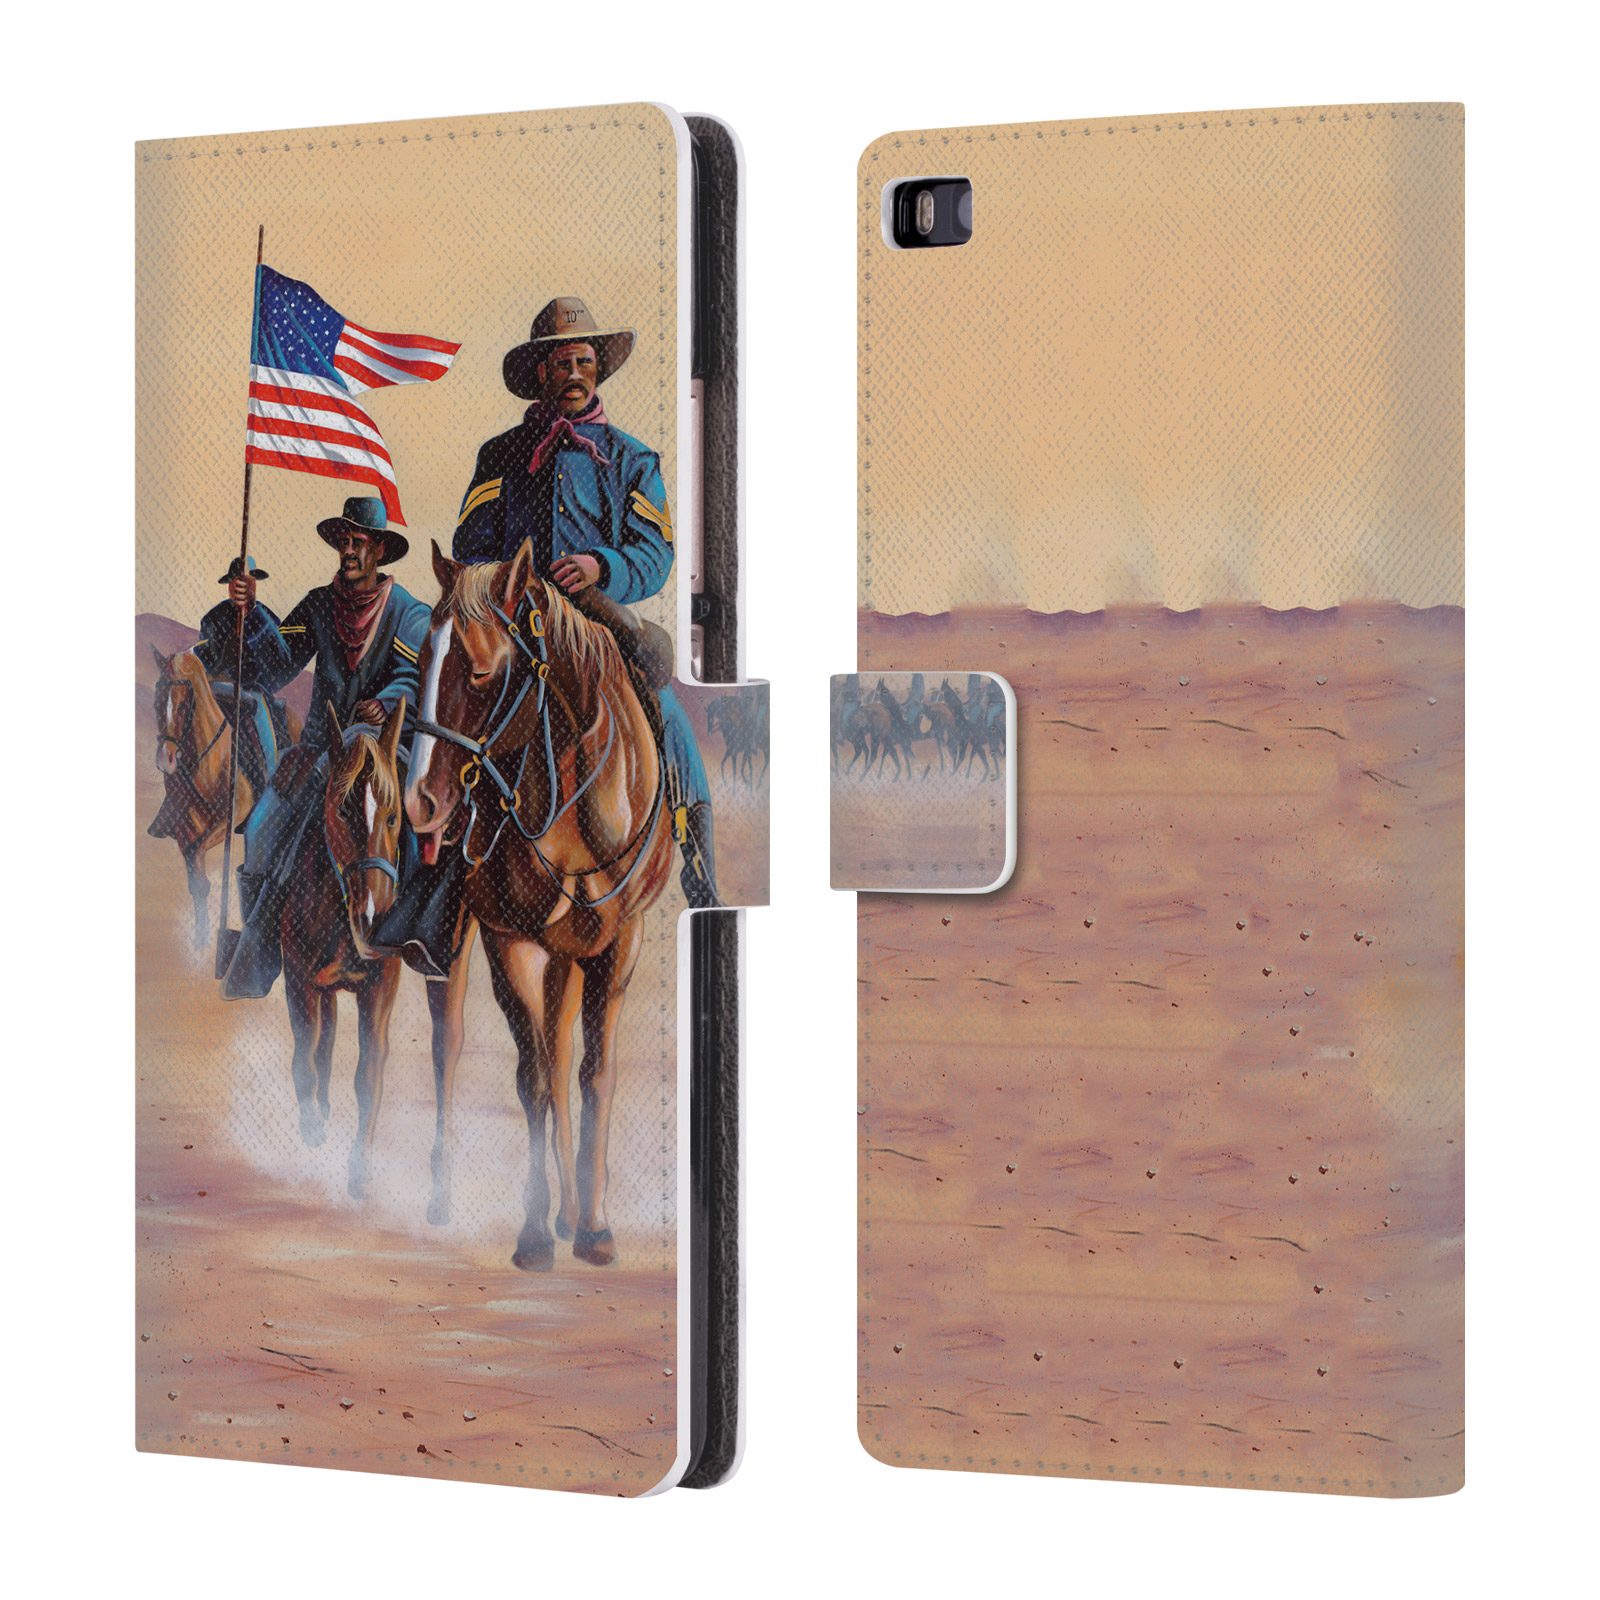 OFFICIAL-GENO-PEOPLES-ART-LIFE-LEATHER-BOOK-WALLET-CASE-COVER-FOR-HUAWEI-PHONES